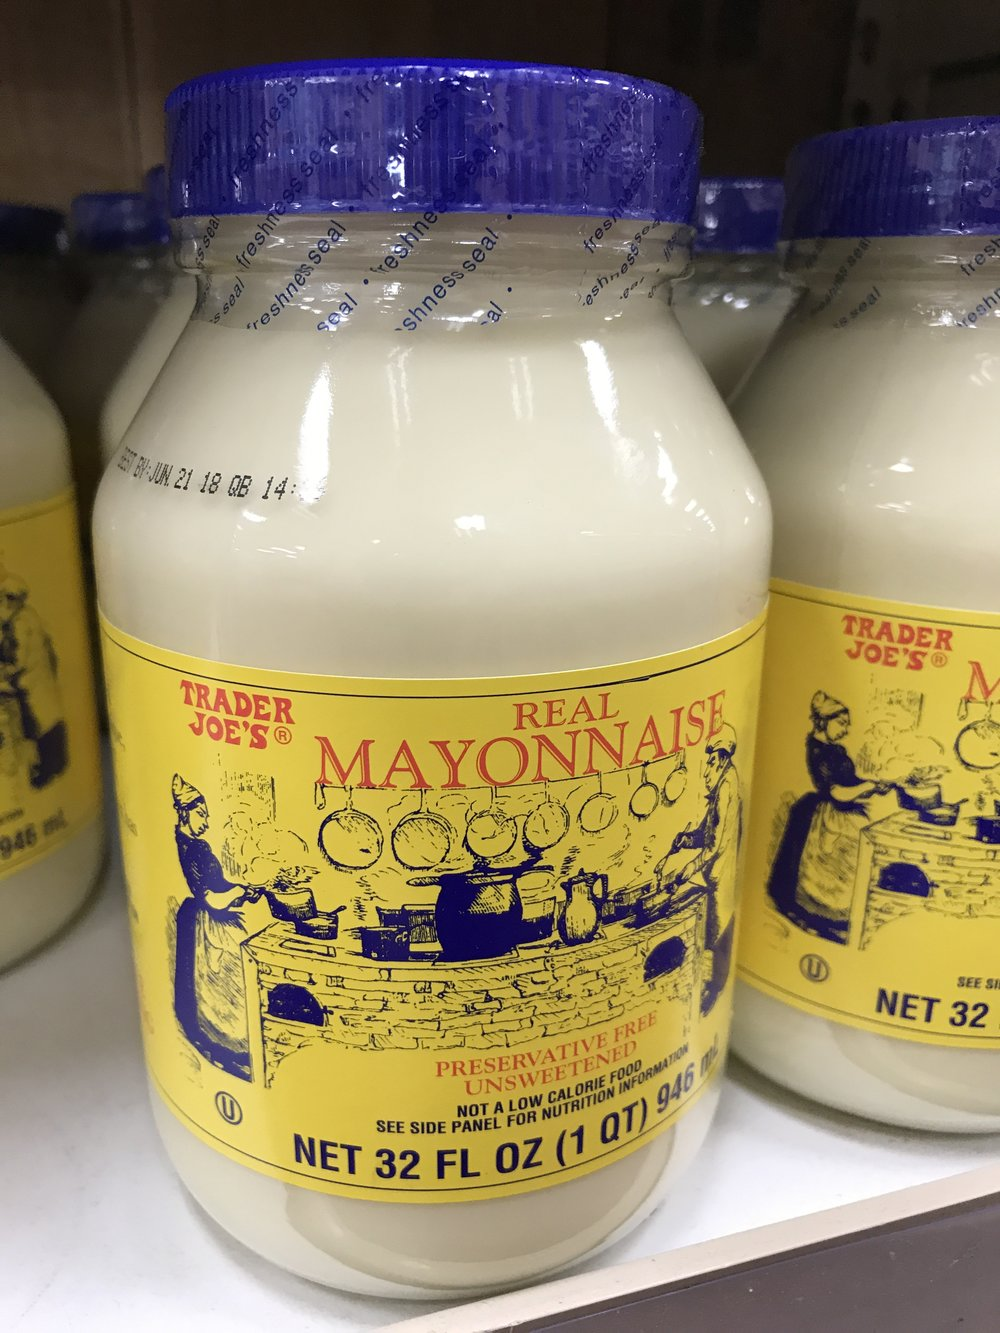 This Trader Joe's Mayonnaise is soy-free and easy to find!